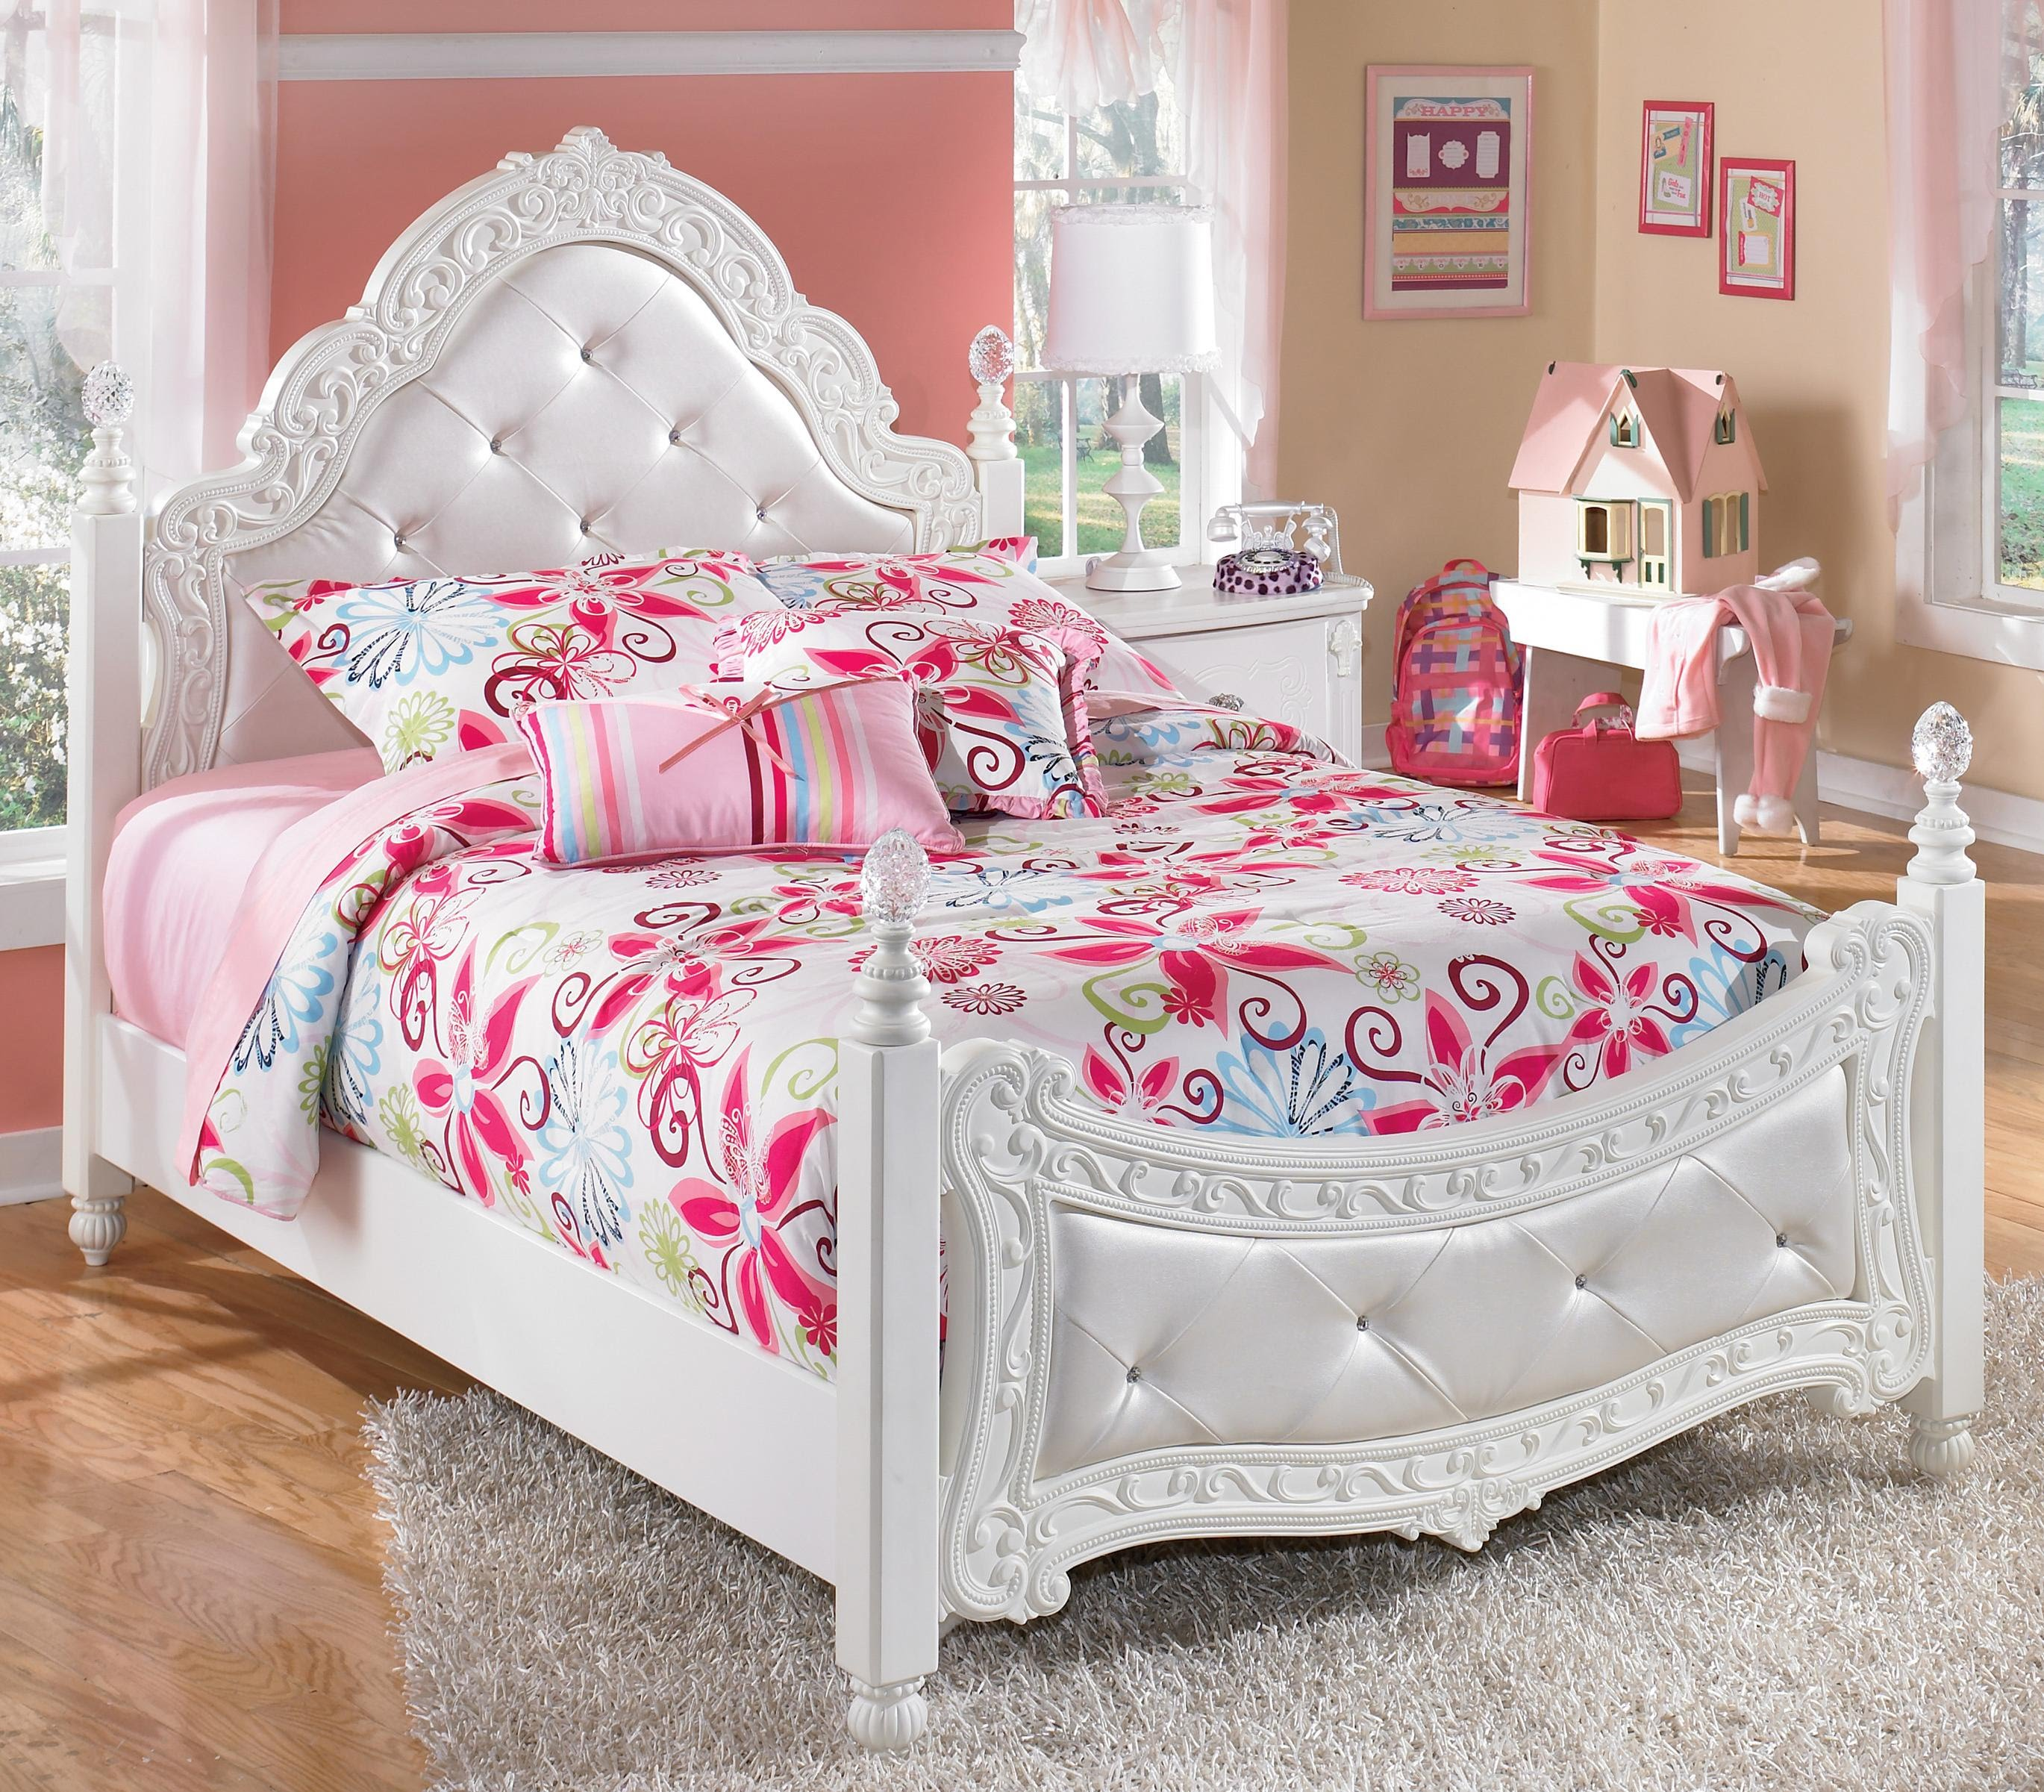 Bedroom Sets Ikea Girl Bedroom Sets In White Also Girl Bedroom Furniture Ikea Good